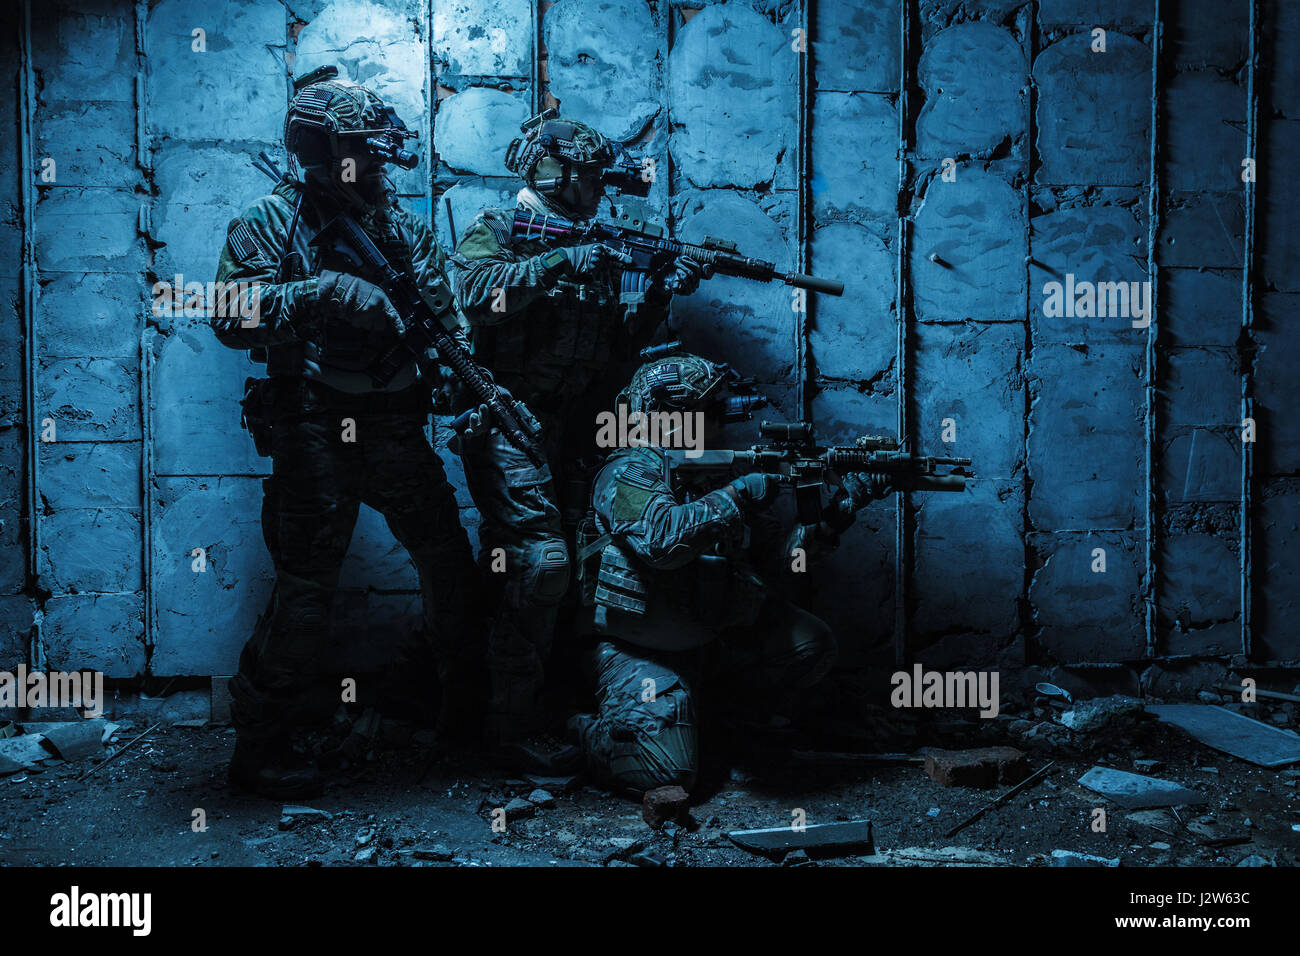 Army Ranger in field Uniforms - Stock Image